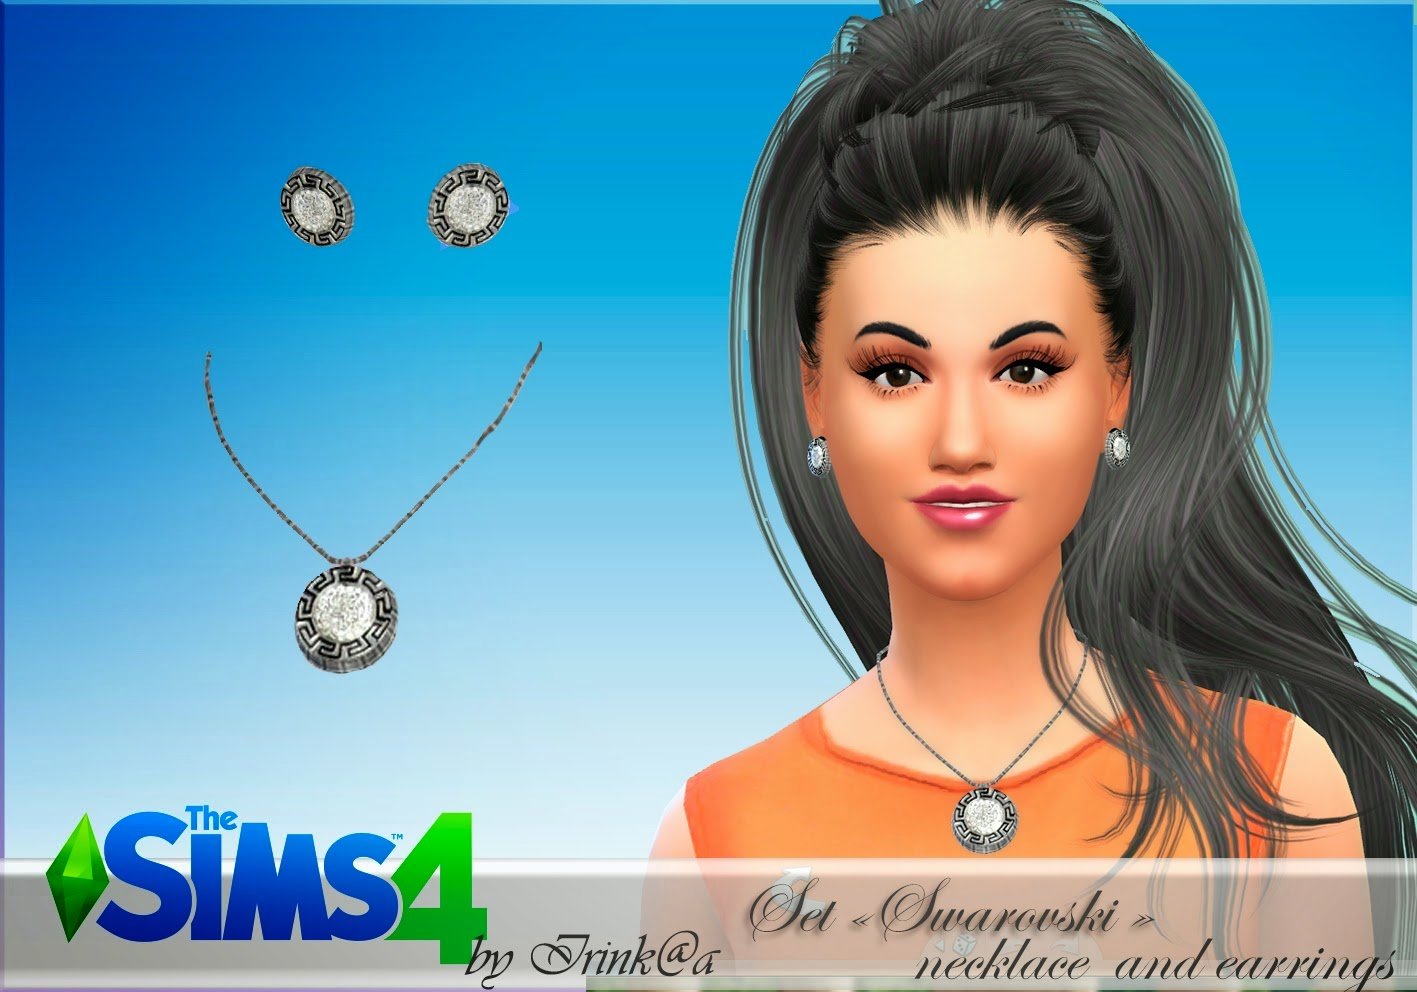 Earrings and Necklace by Irink@a